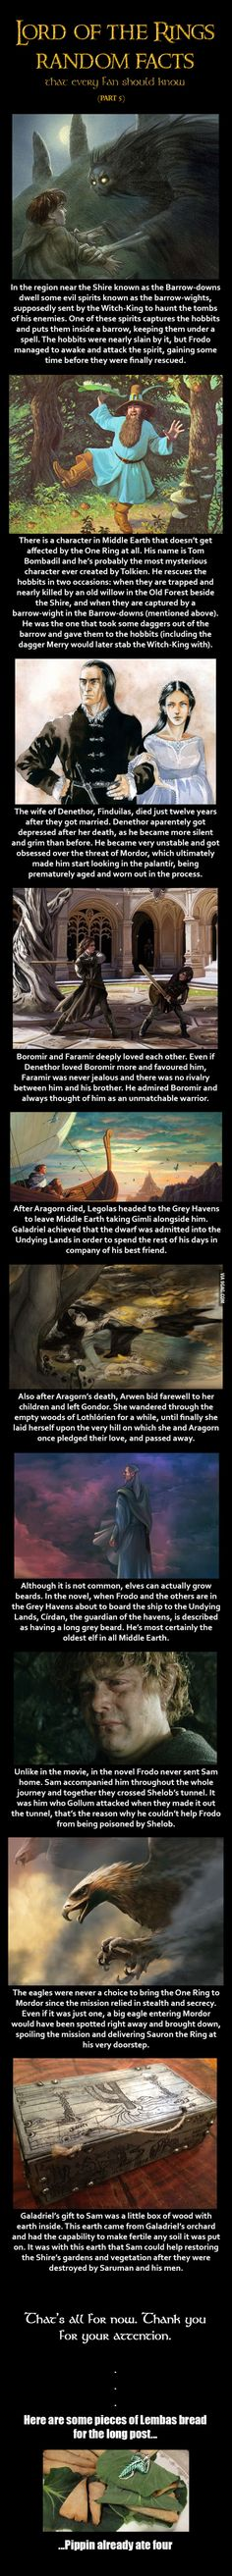 Here are some Lord of the Rings random facts (Part 5)